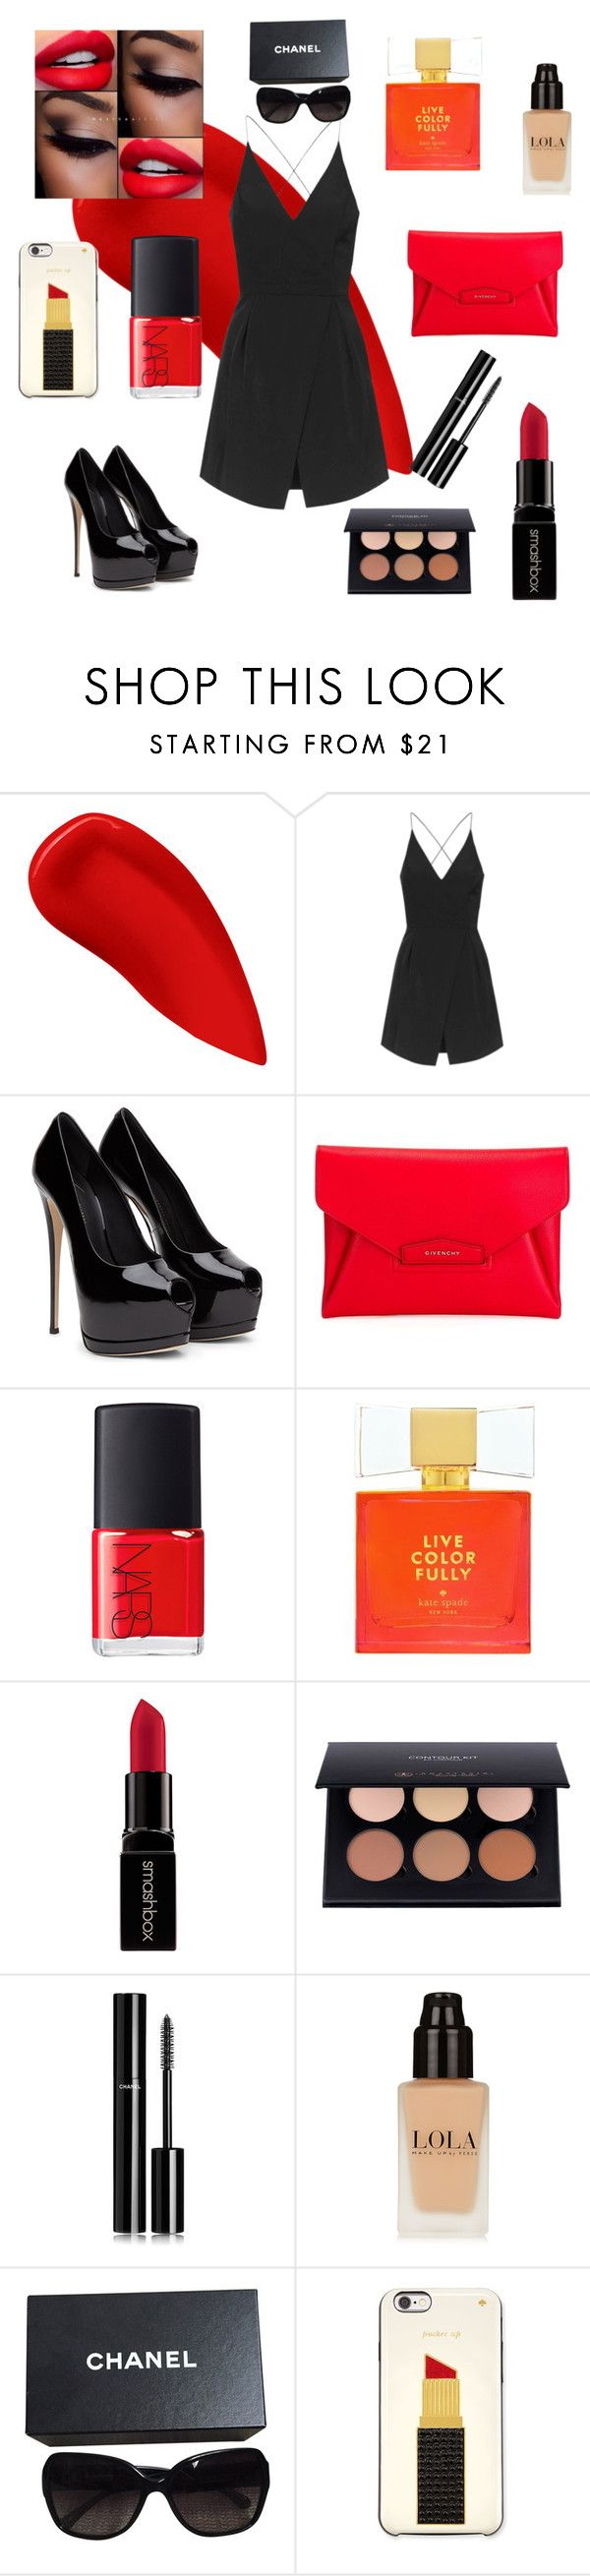 """Fancy red style "" by horsiebigroller ❤ liked on Polyvore featuring Lipstick Queen, Topshop, Givenchy, NARS Cosmetics, Kate Spade, Smashbox, Chanel, women's clothing, women and female"